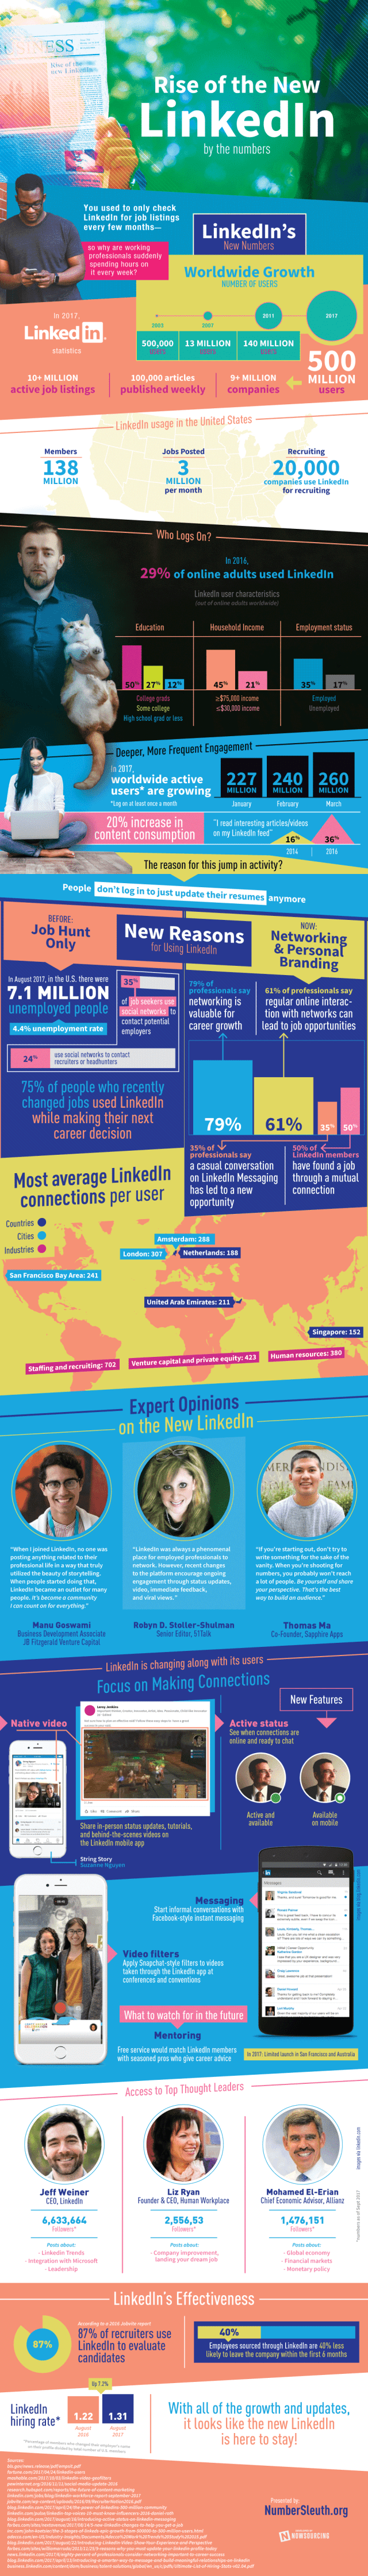 Rise of New LinkedIn by Numbers